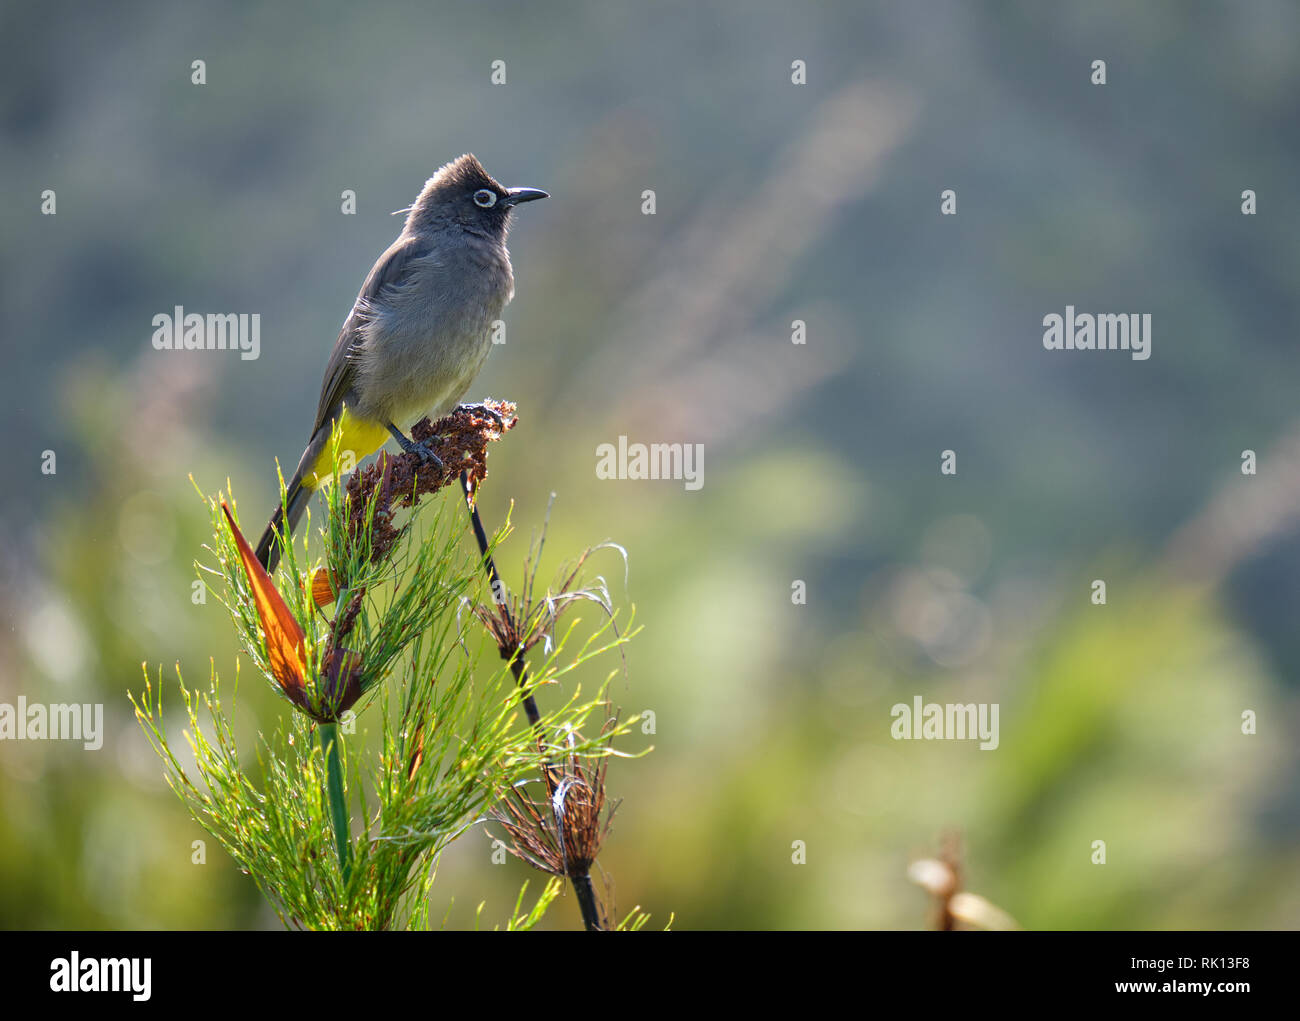 South african Cape Bulbul standing on top of dried bush. Sideway view with blurred background Stock Photo